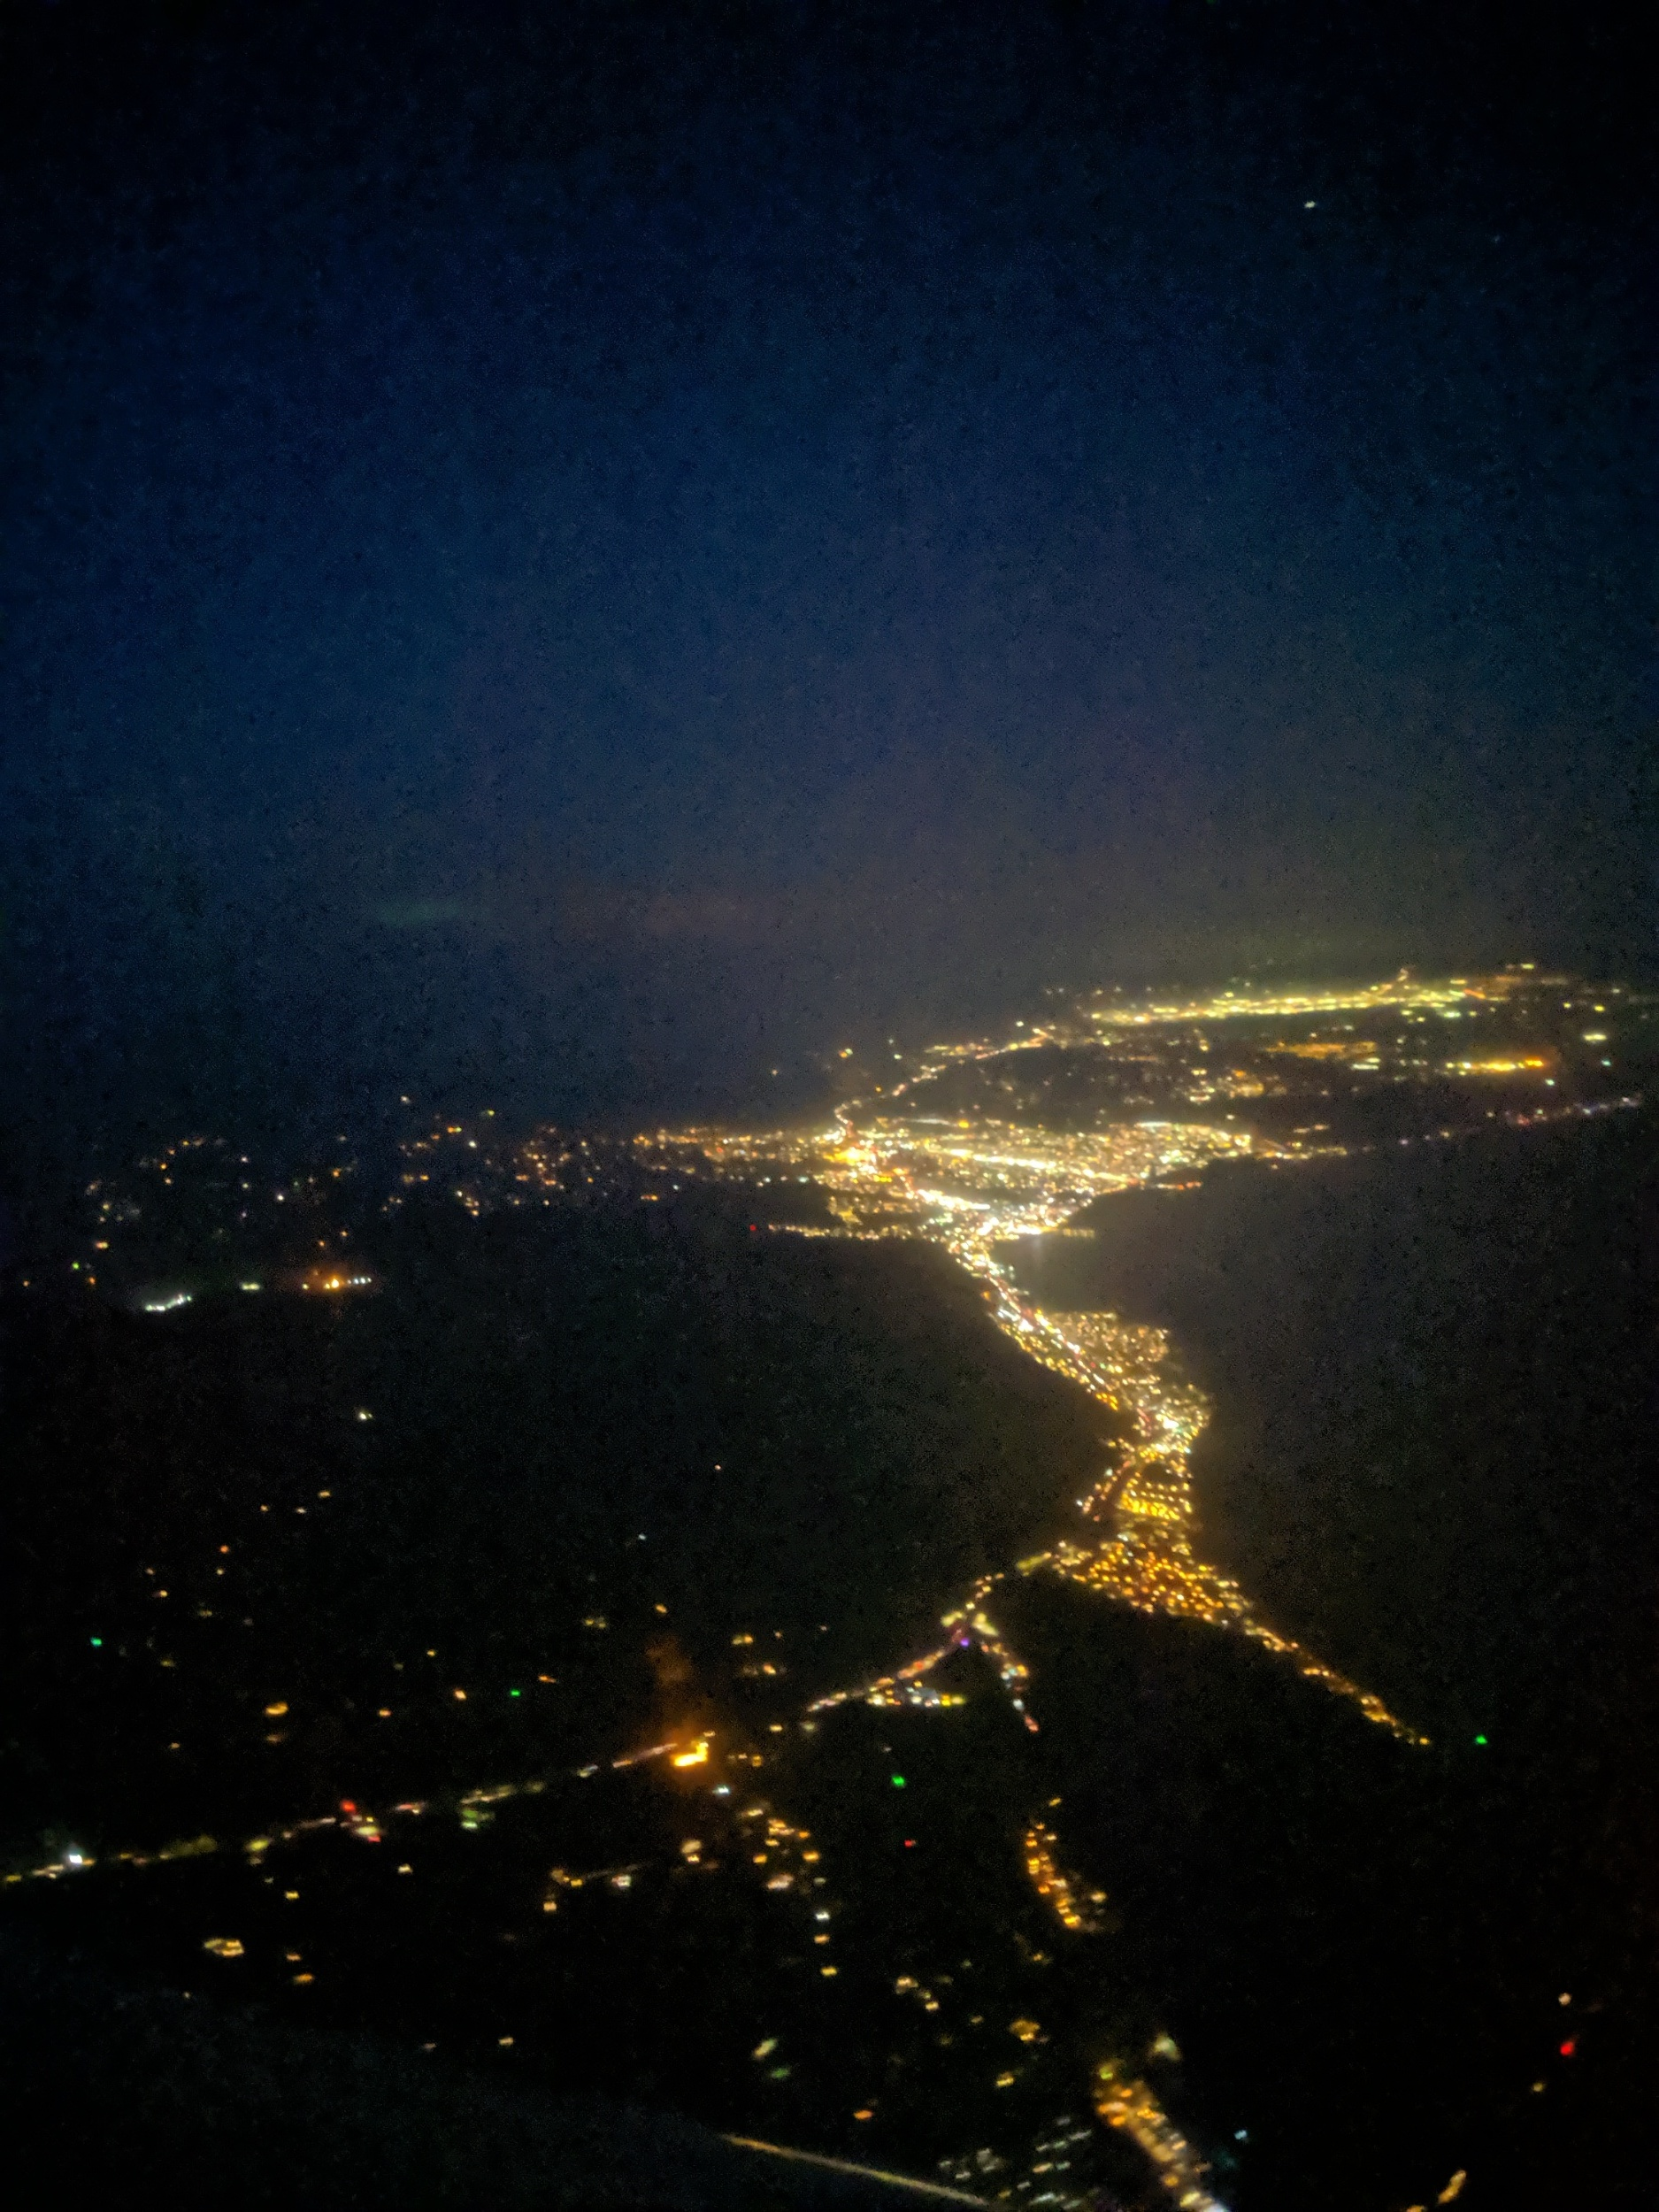 An ariel photo of the central coast at night.